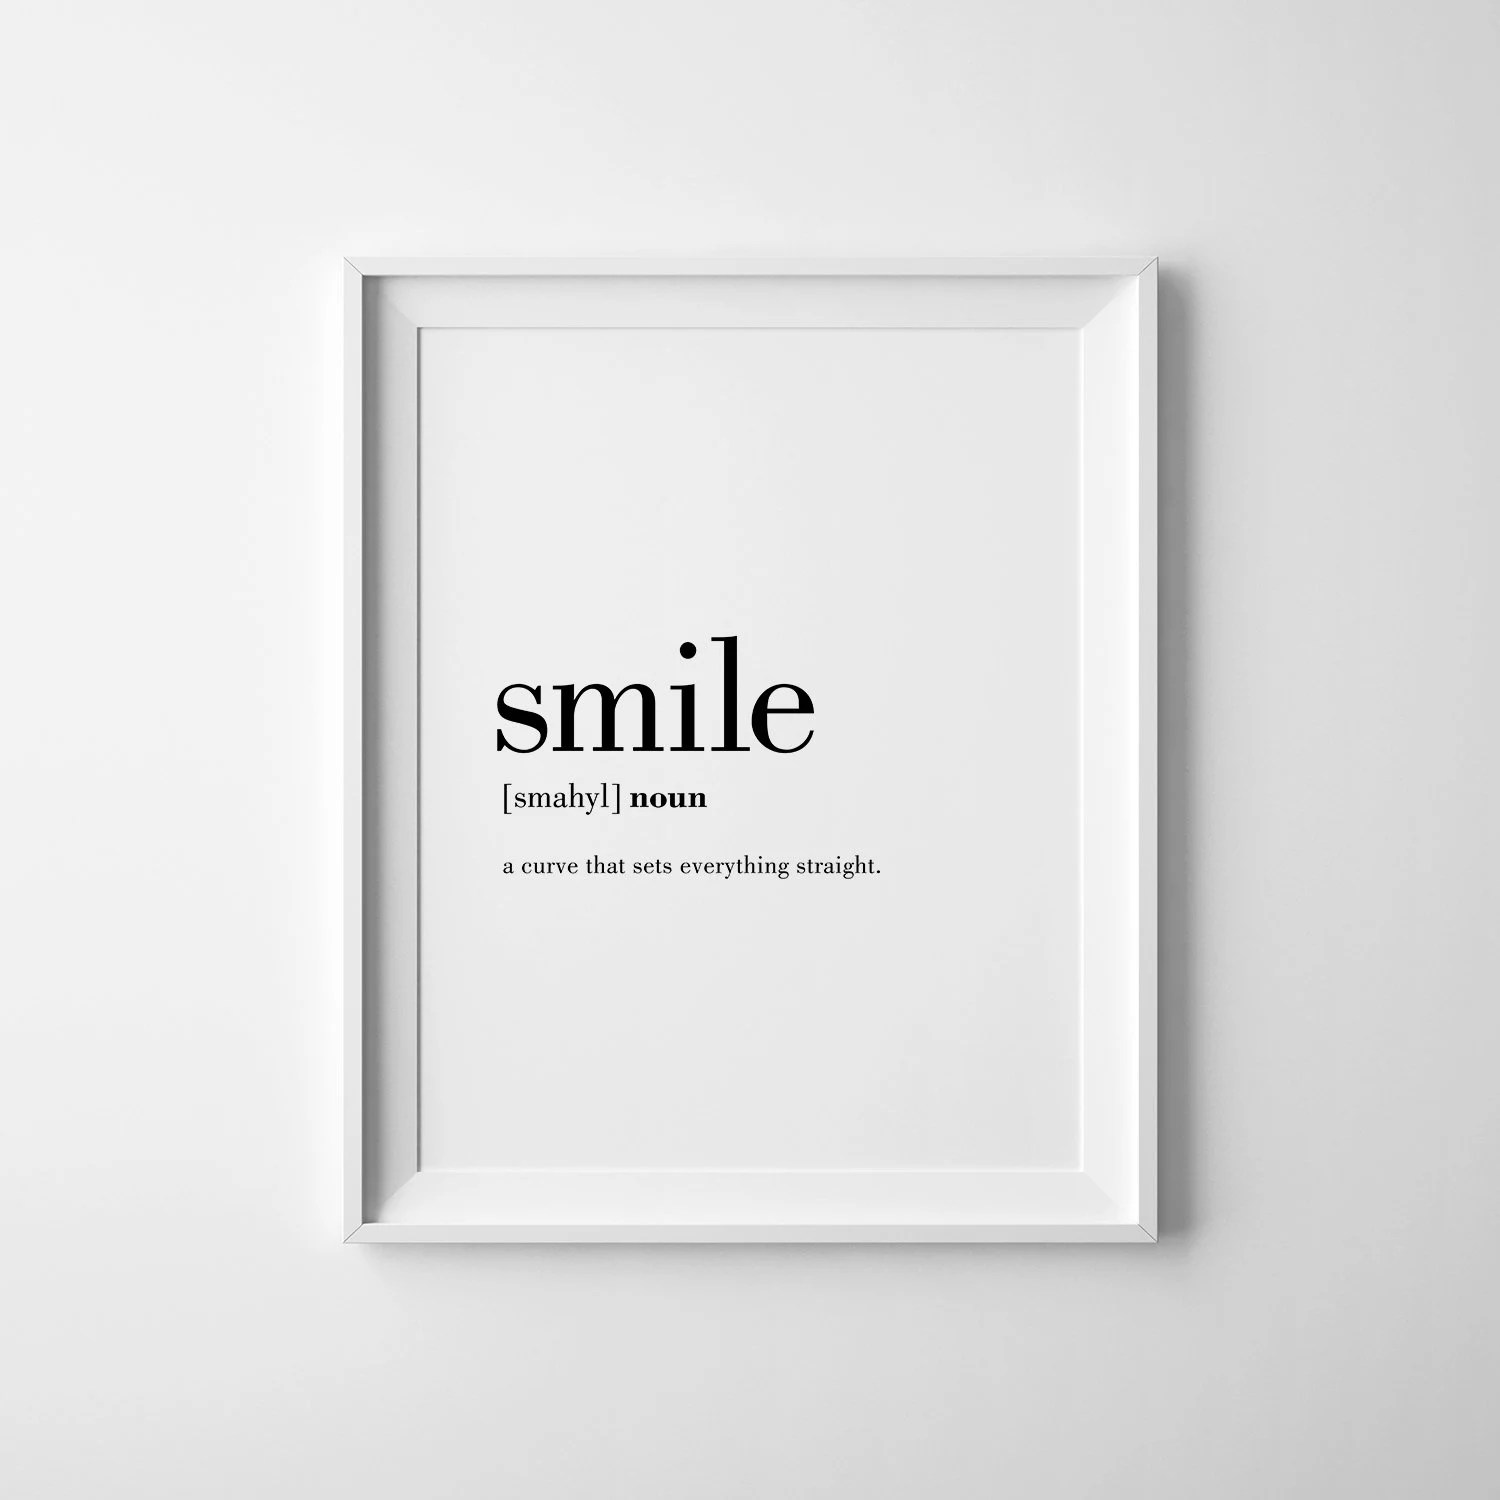 Arte Definition Francais Smile Print Smile Definition Poster Affiche Scandinave Smile Decor Definition Posters Smile Wall Art Cheer Up Gift